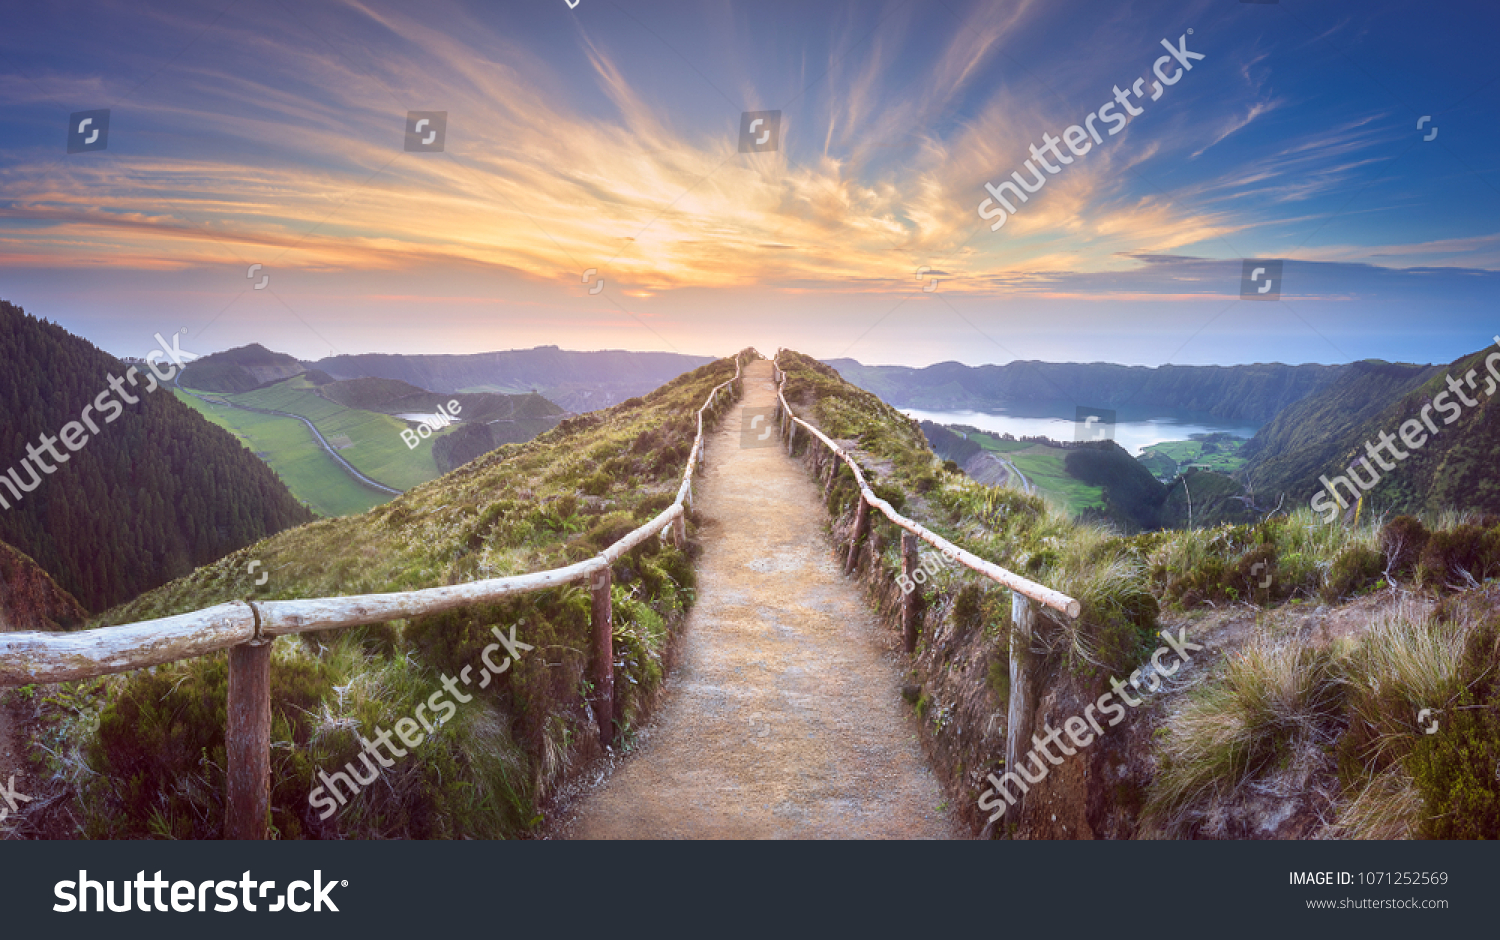 Mountain landscape with hiking trail and view of beautiful lakes Ponta Delgada, Sao Miguel Island, Azores, Portugal. #1071252569